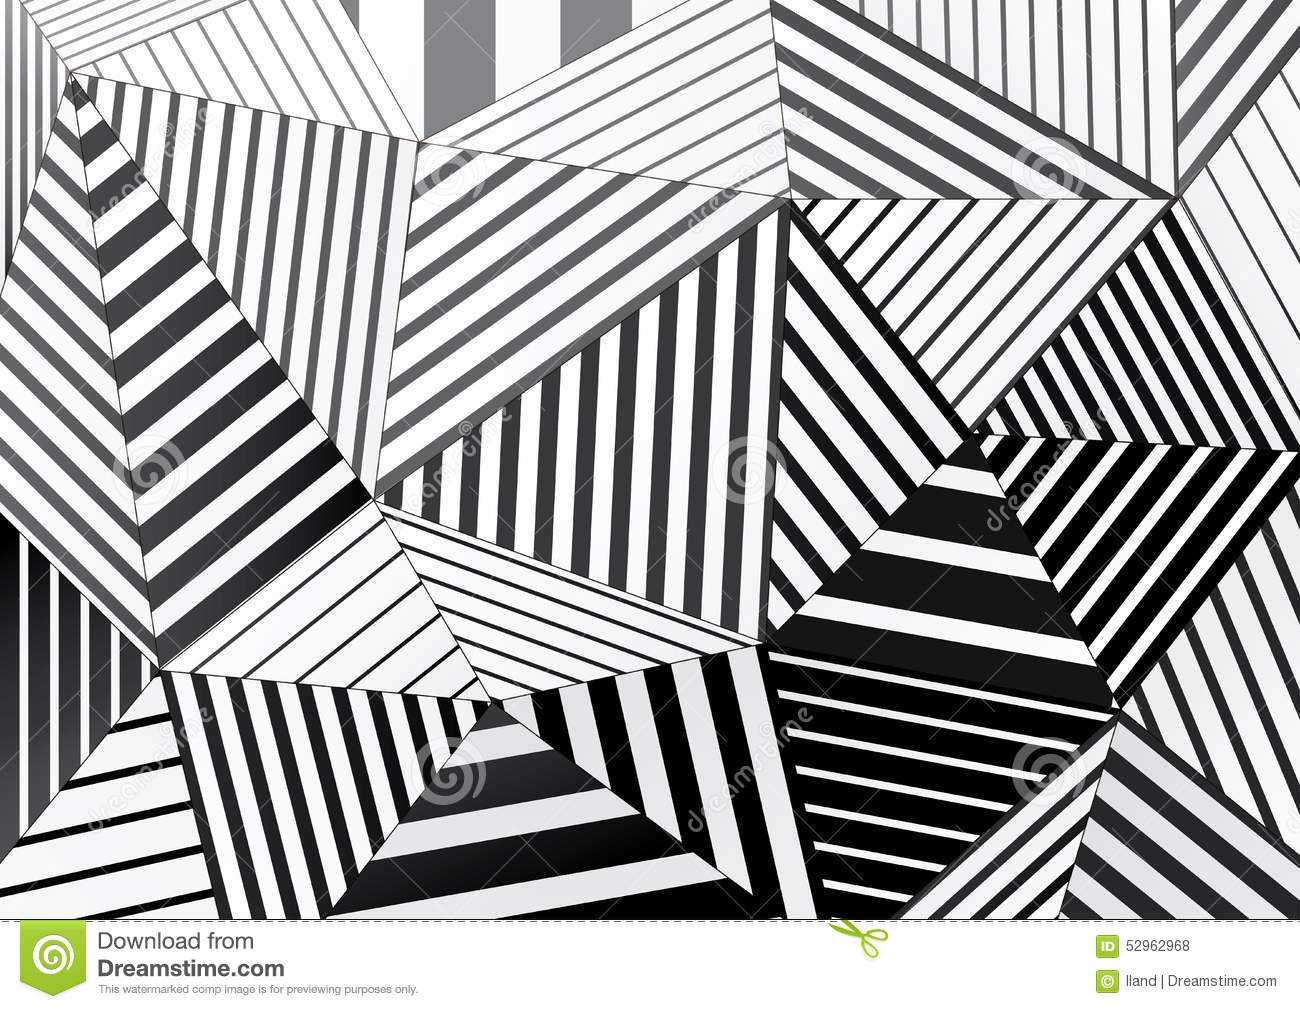 background of black and white striped triangles for